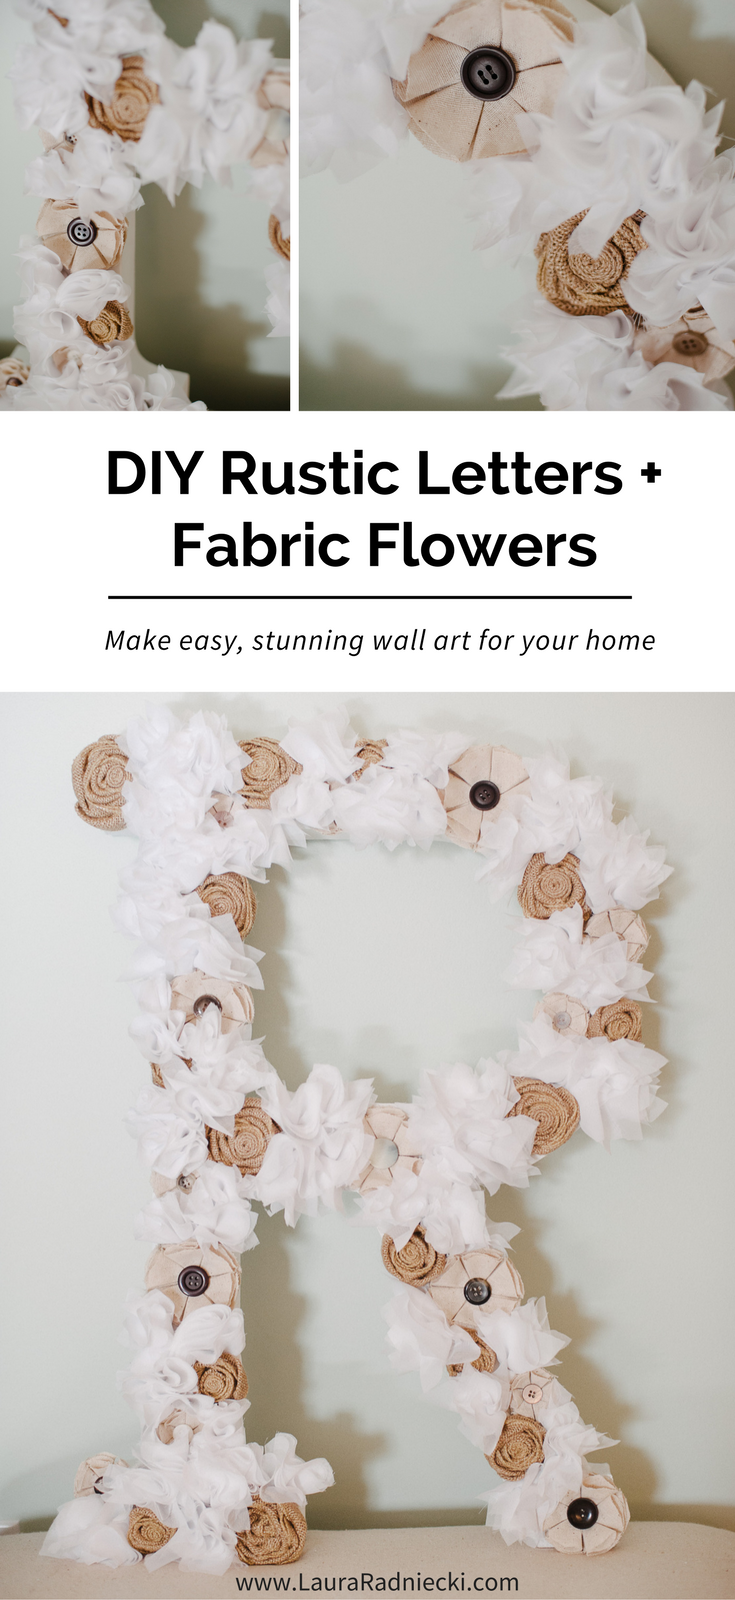 DIY Tutorial- How To Make A Fabric Flower Letter - DIY Rustic Letters and Fabric Flowers | DIY Rustic Letter with Fabric Flowers